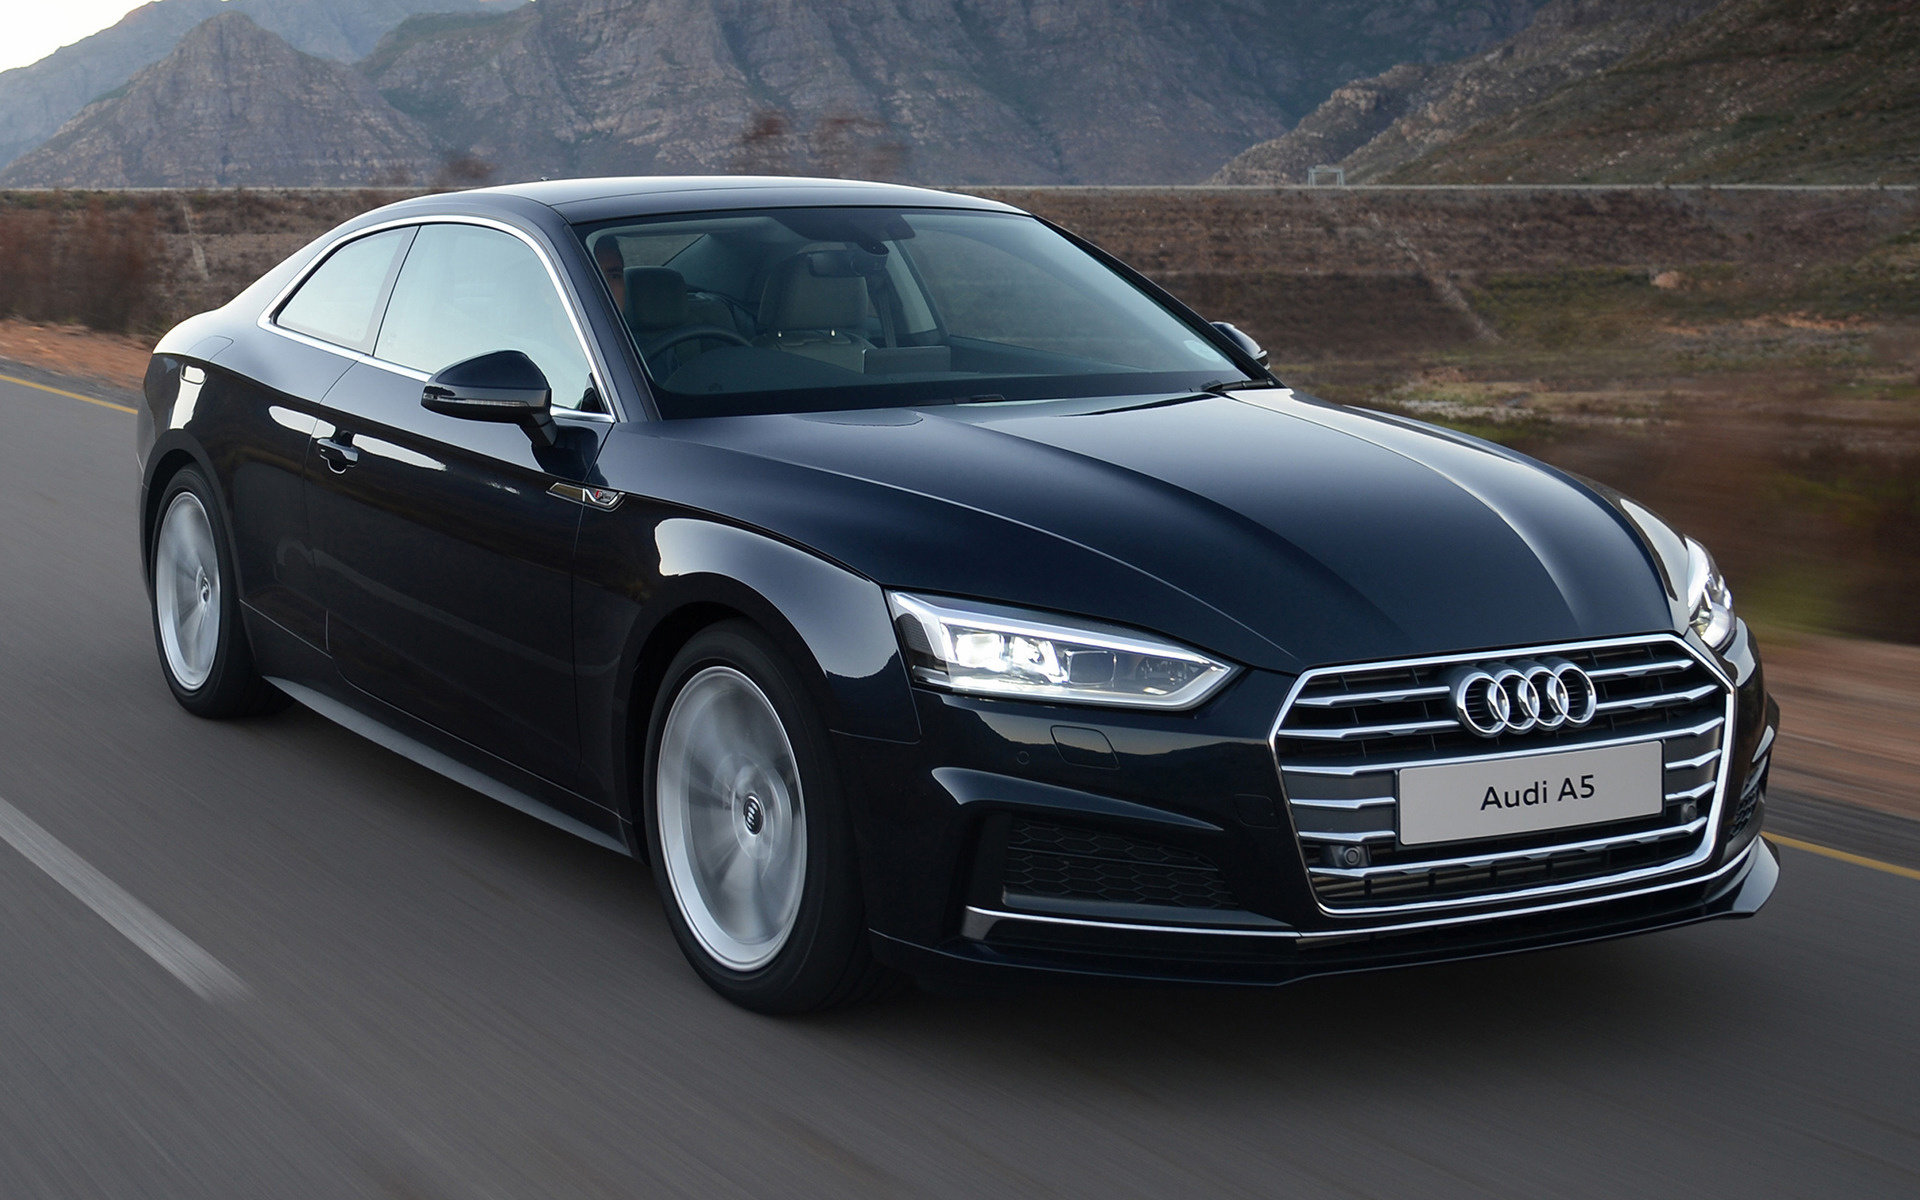 1920x1200 - Audi A5 Wallpapers 27